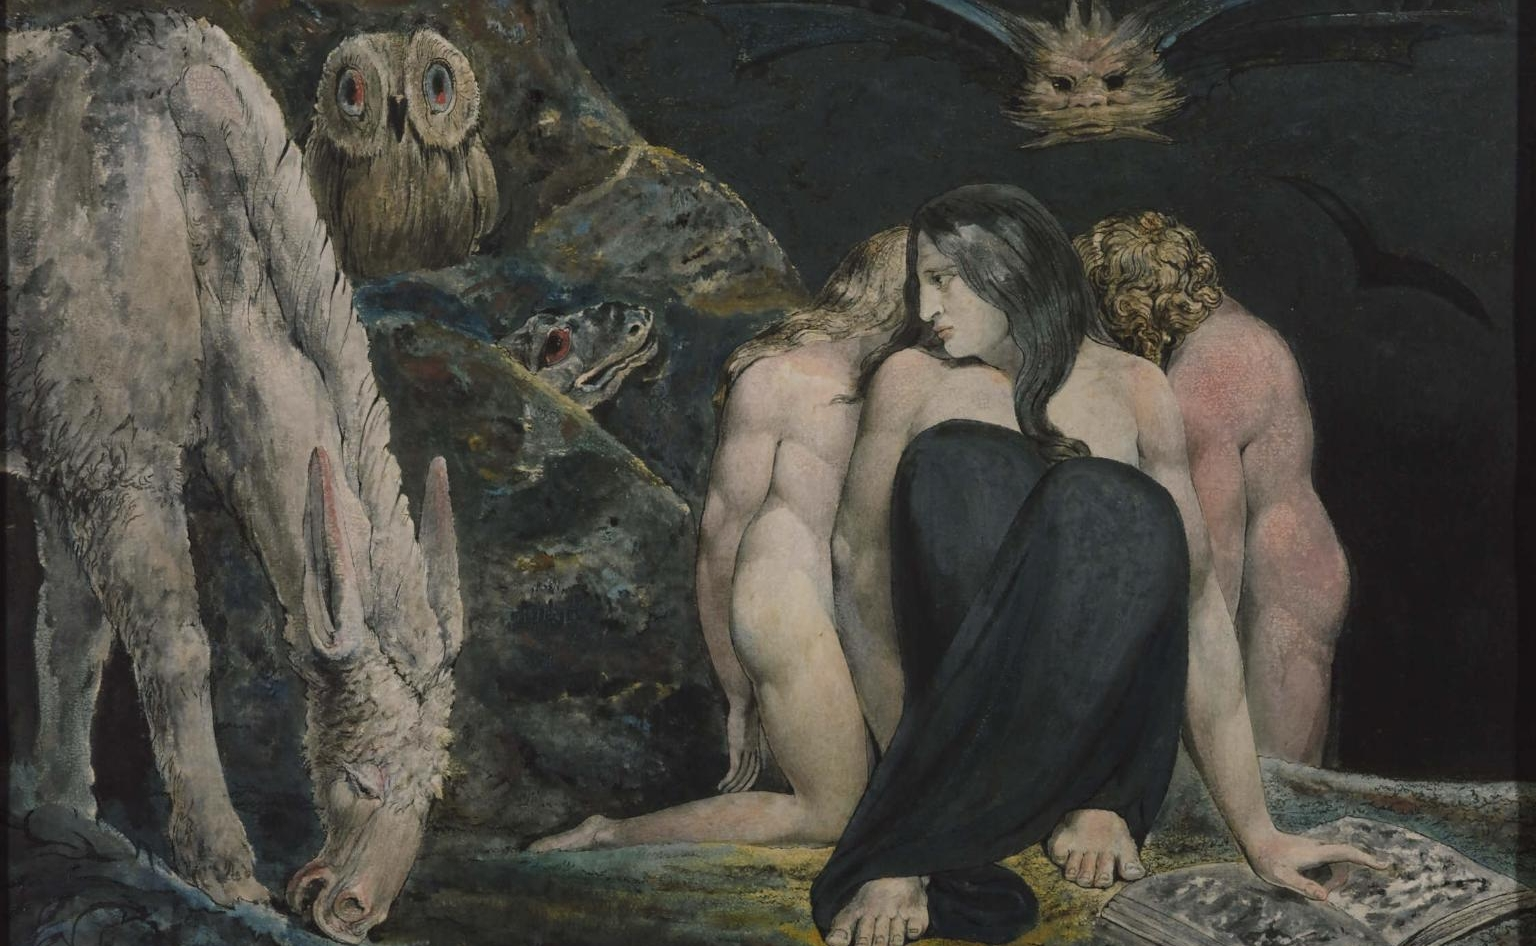 William Blake's  The Night of Enitharmon's Joy , possibly alluding to the Three Fates of Greek myth